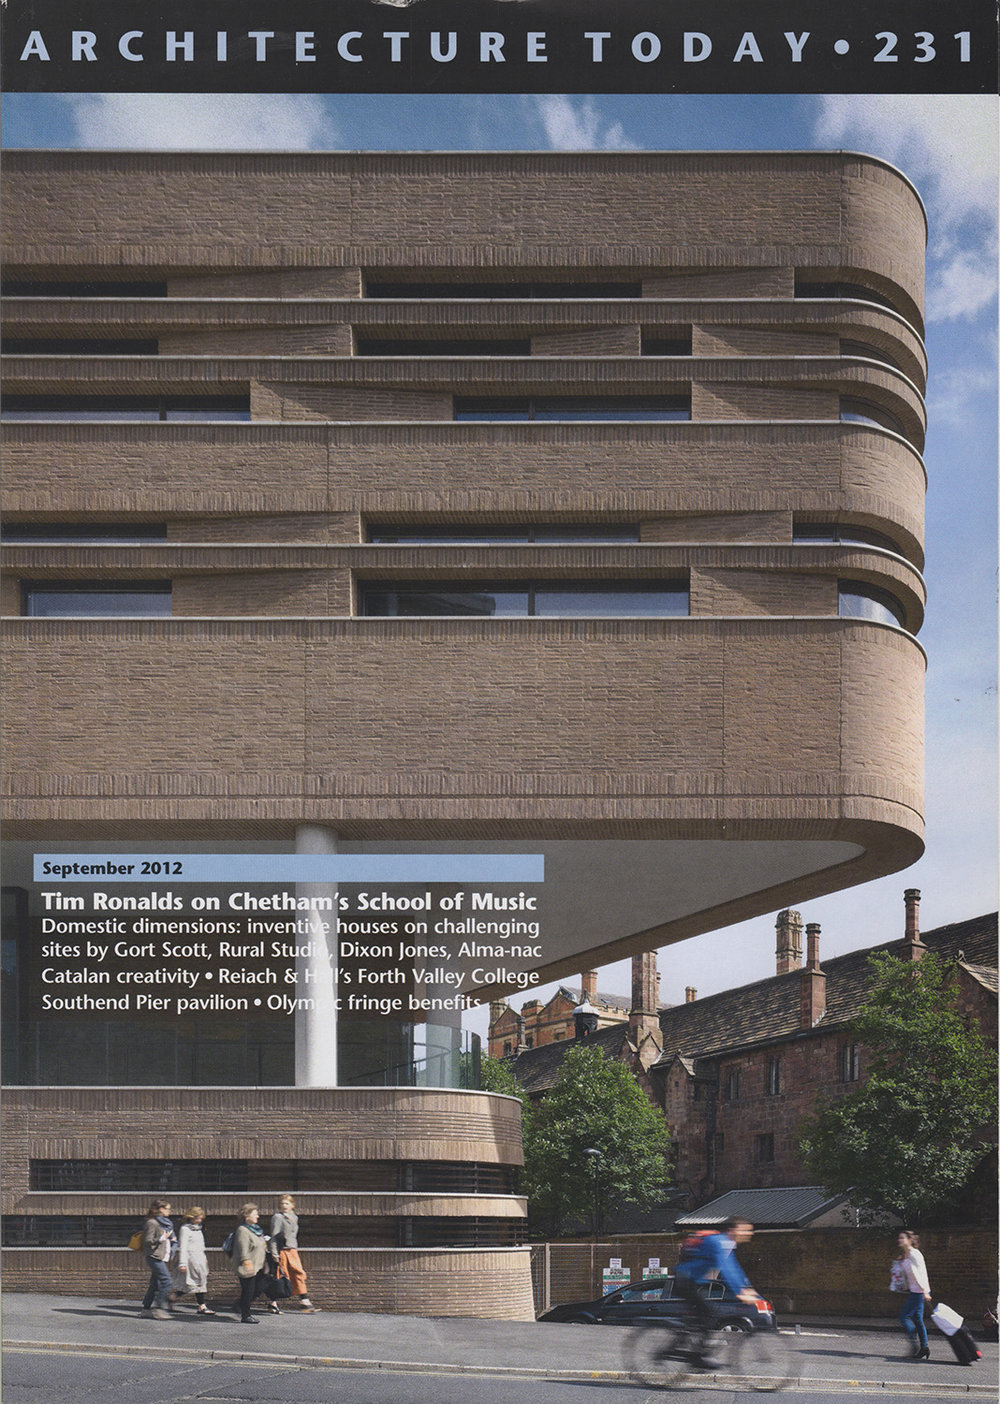 - Architecture Today, September 2012Chetham's School of Music, stephenson STUDIO